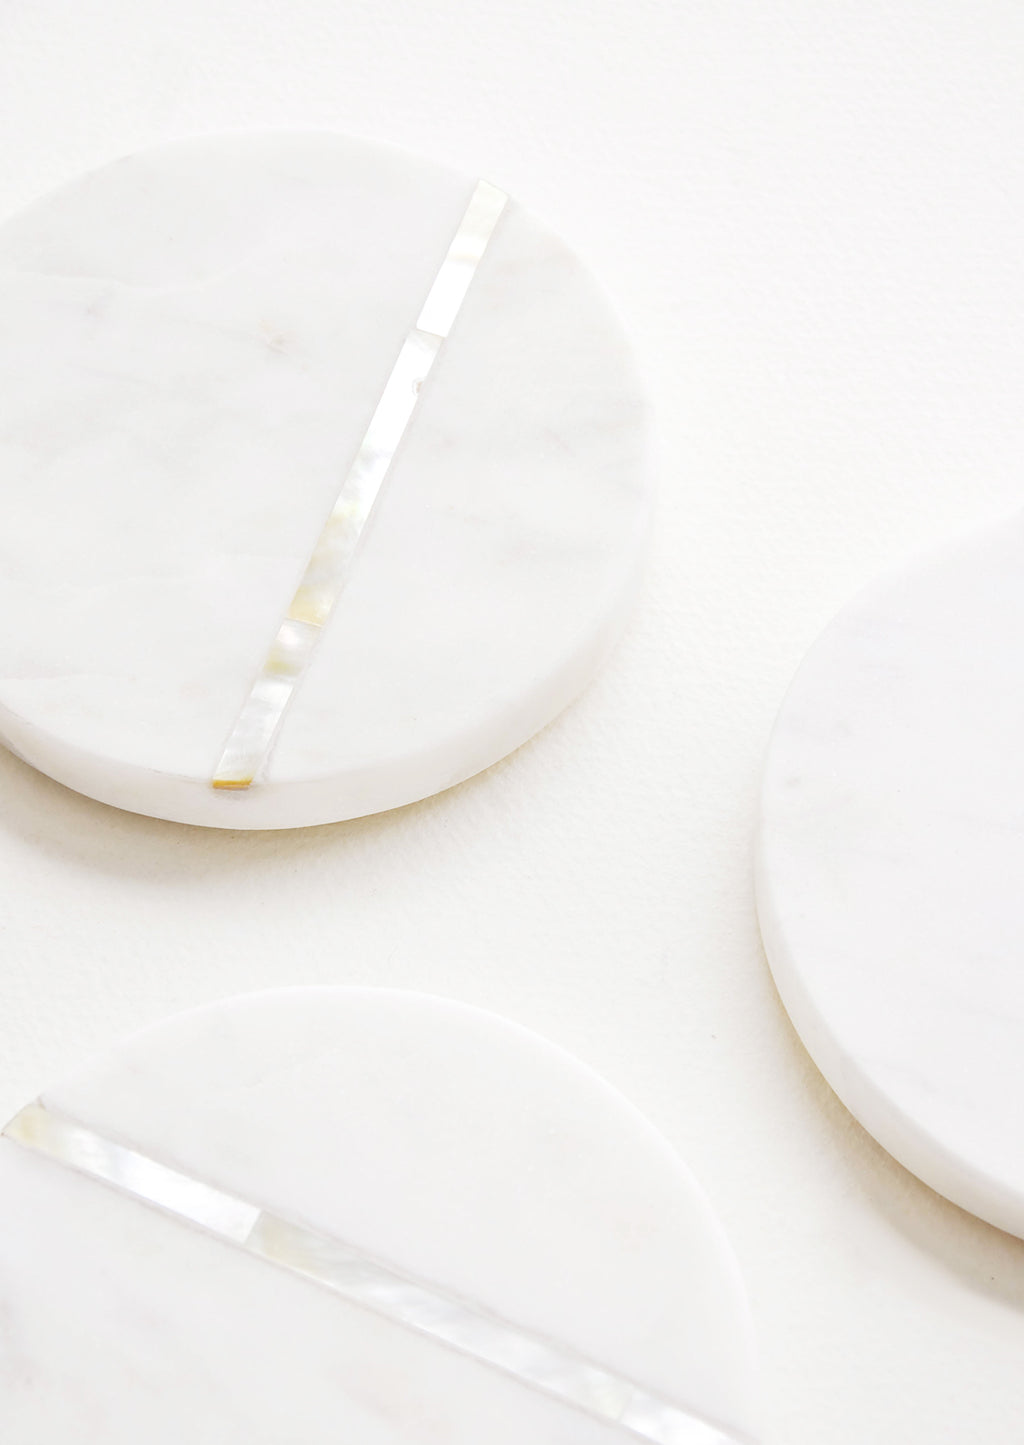 2: Detail of Round White Marble Coasters with Abalone Shell Inlay.